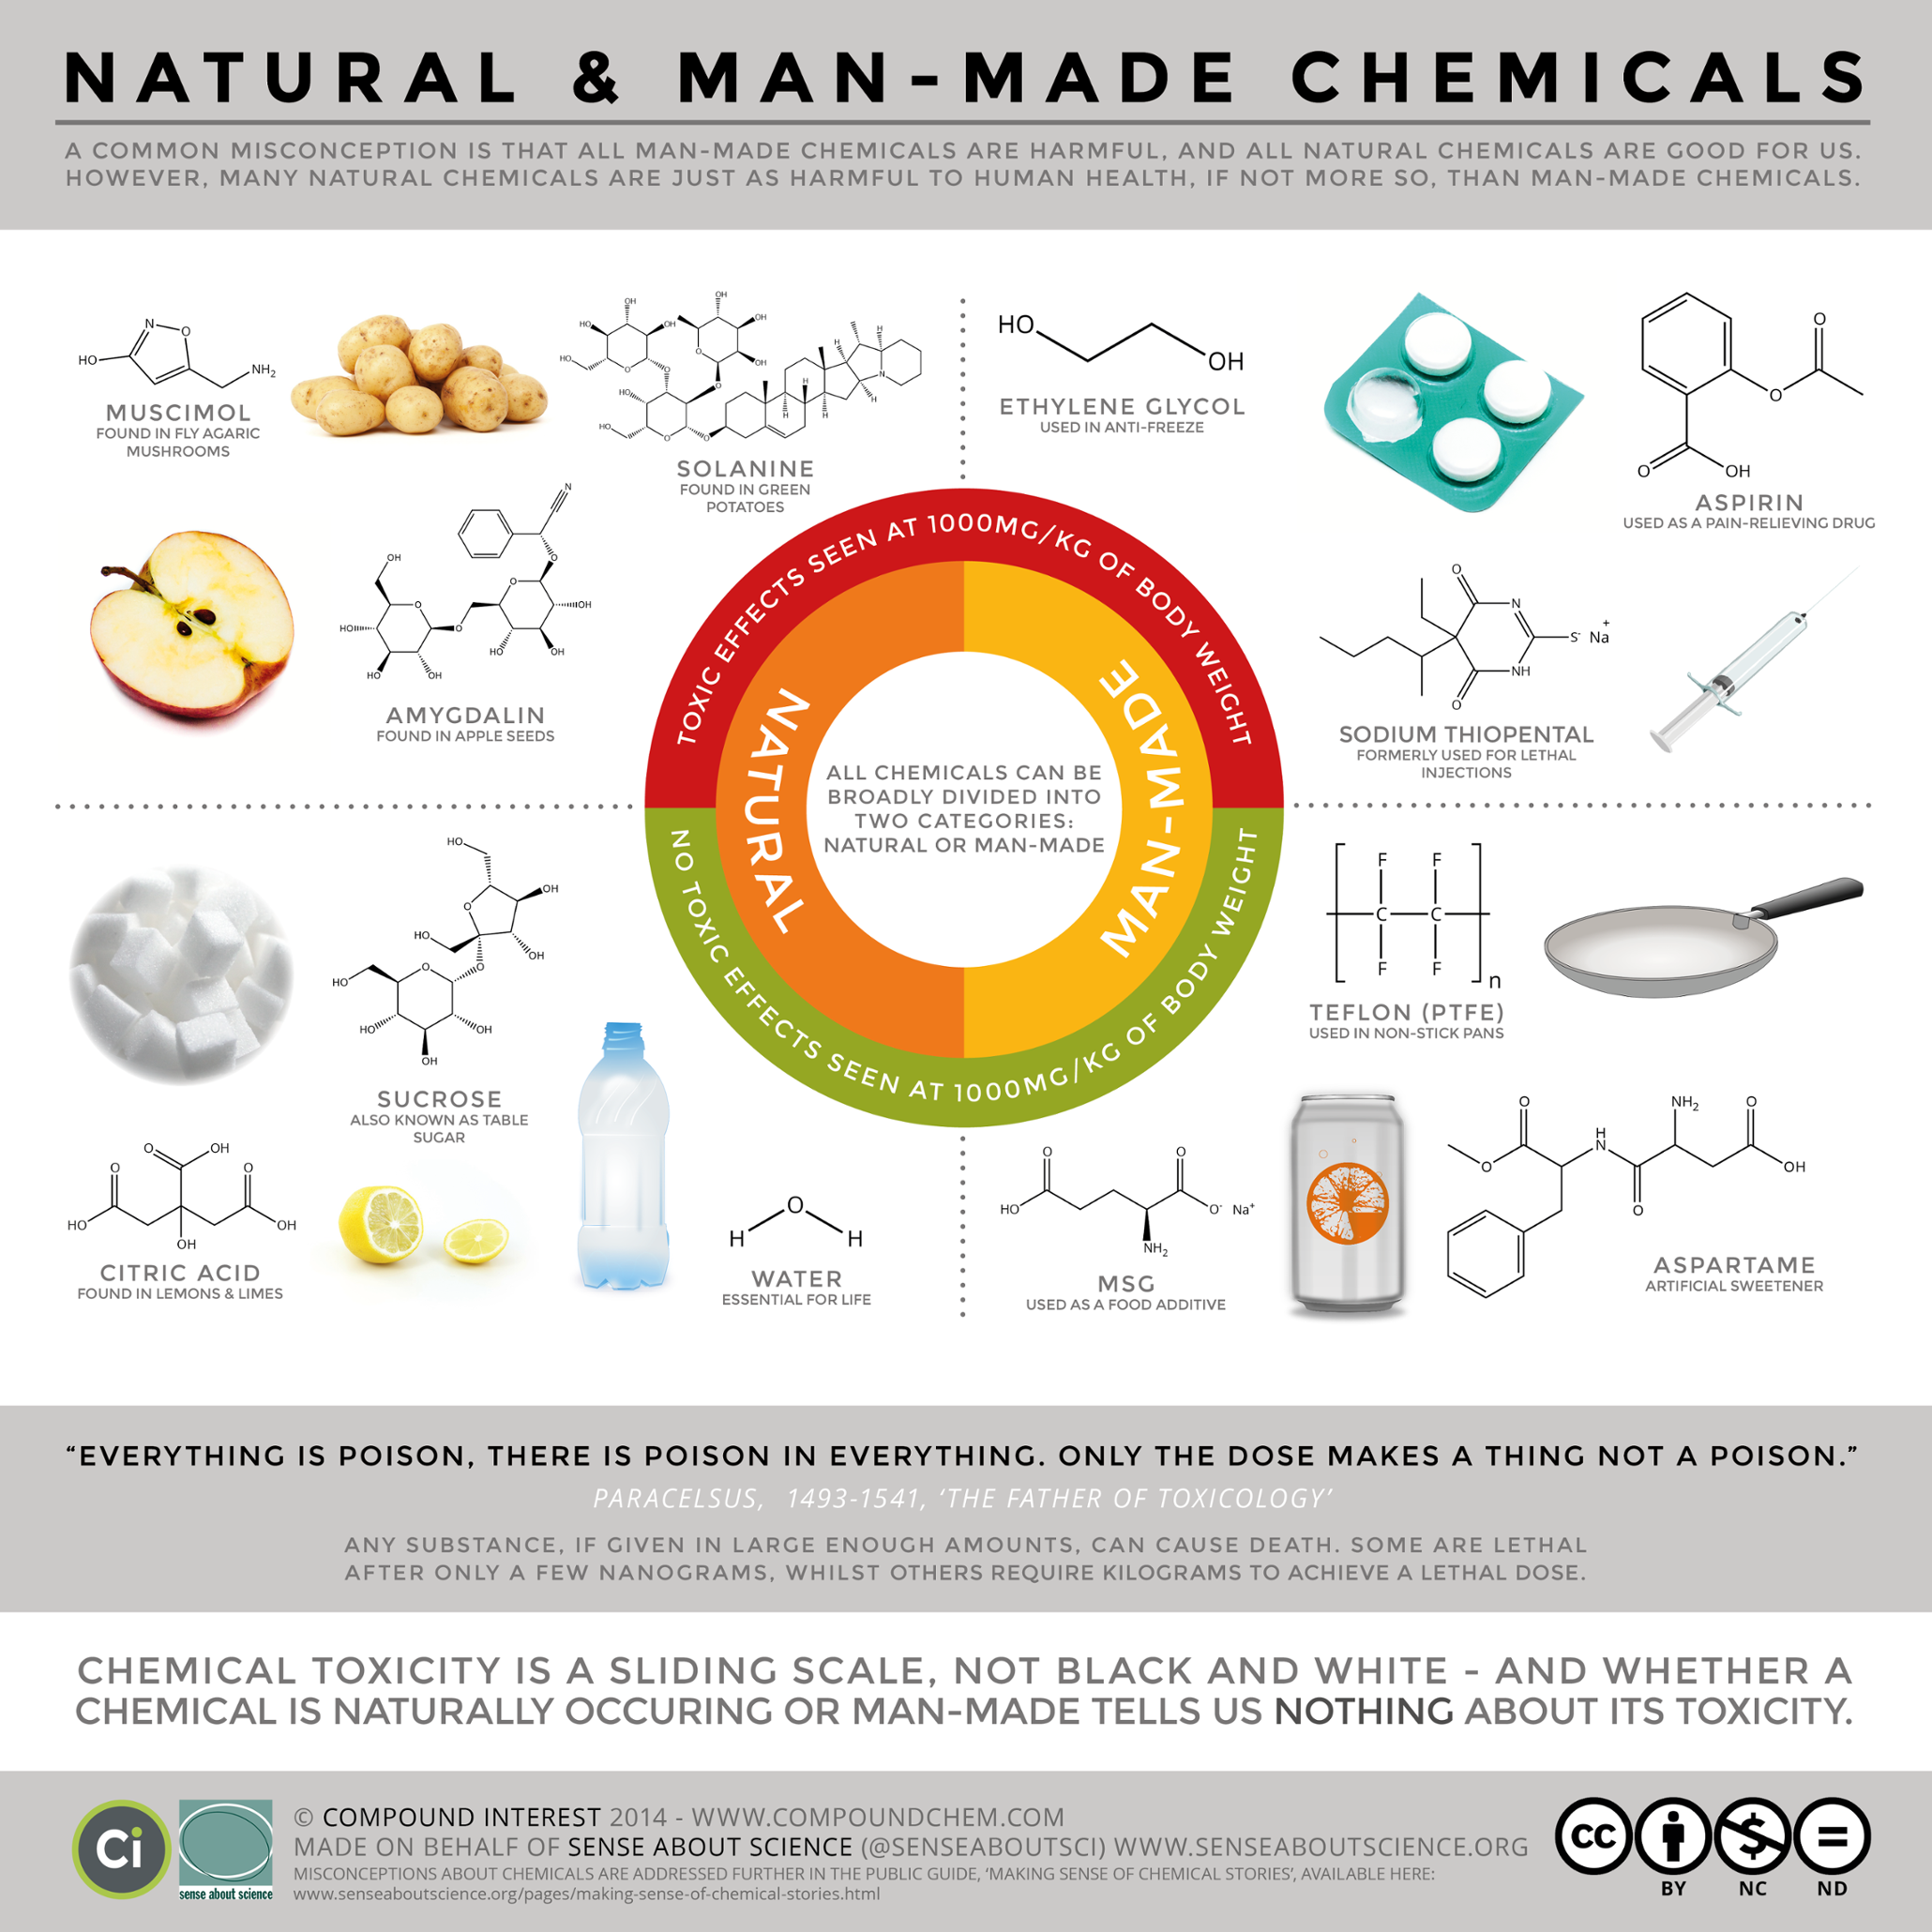 Poster of natural v man-made chemicals